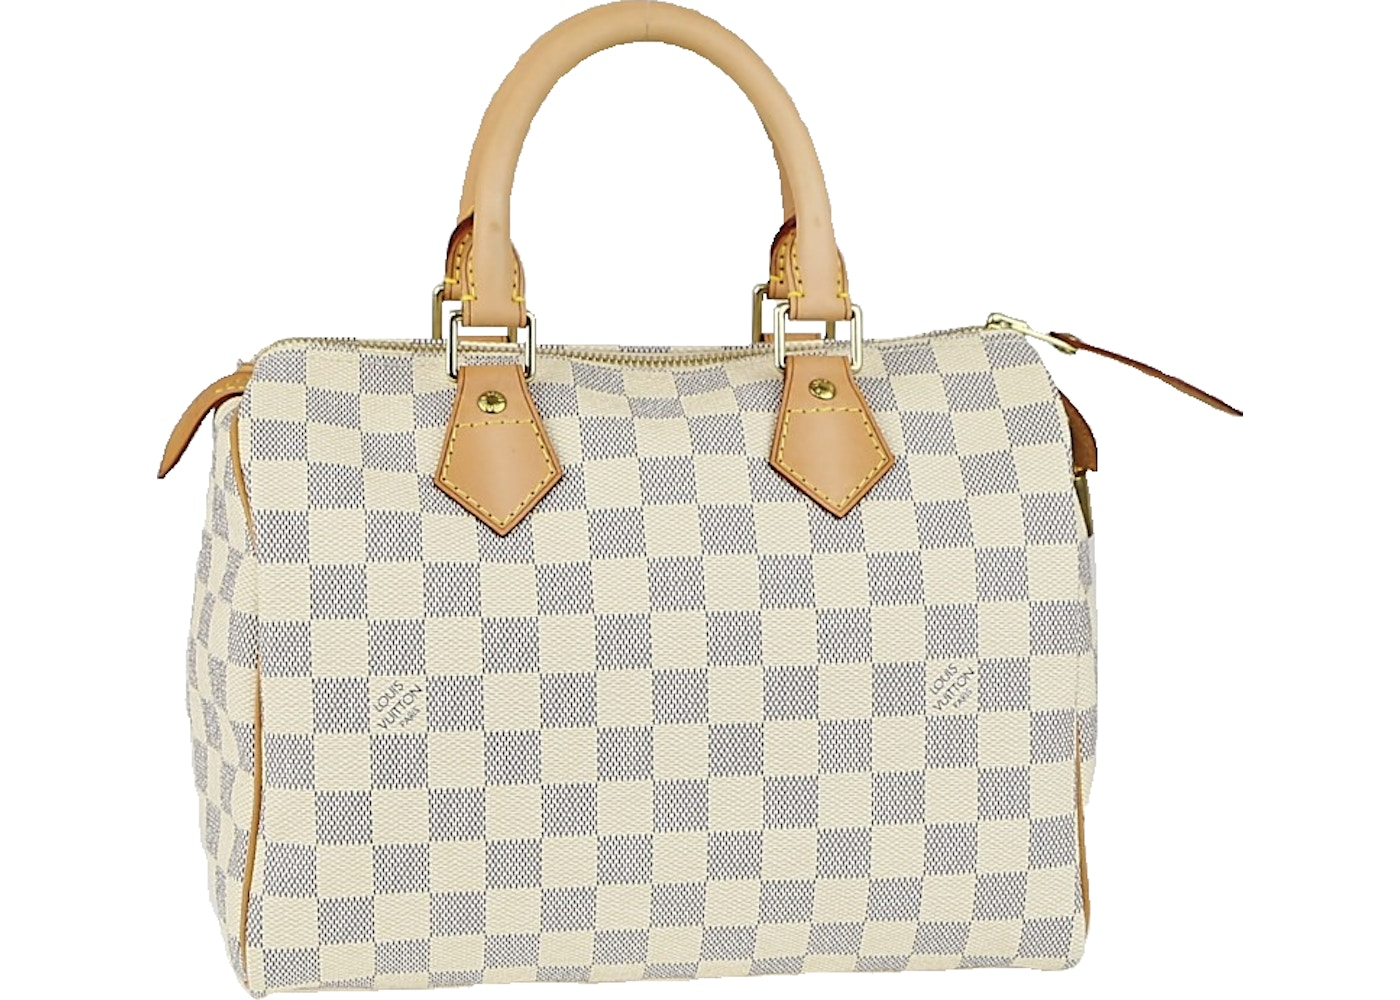 281326d5ab5 Louis Vuitton Speedy Damier Azur 25 White/Blue